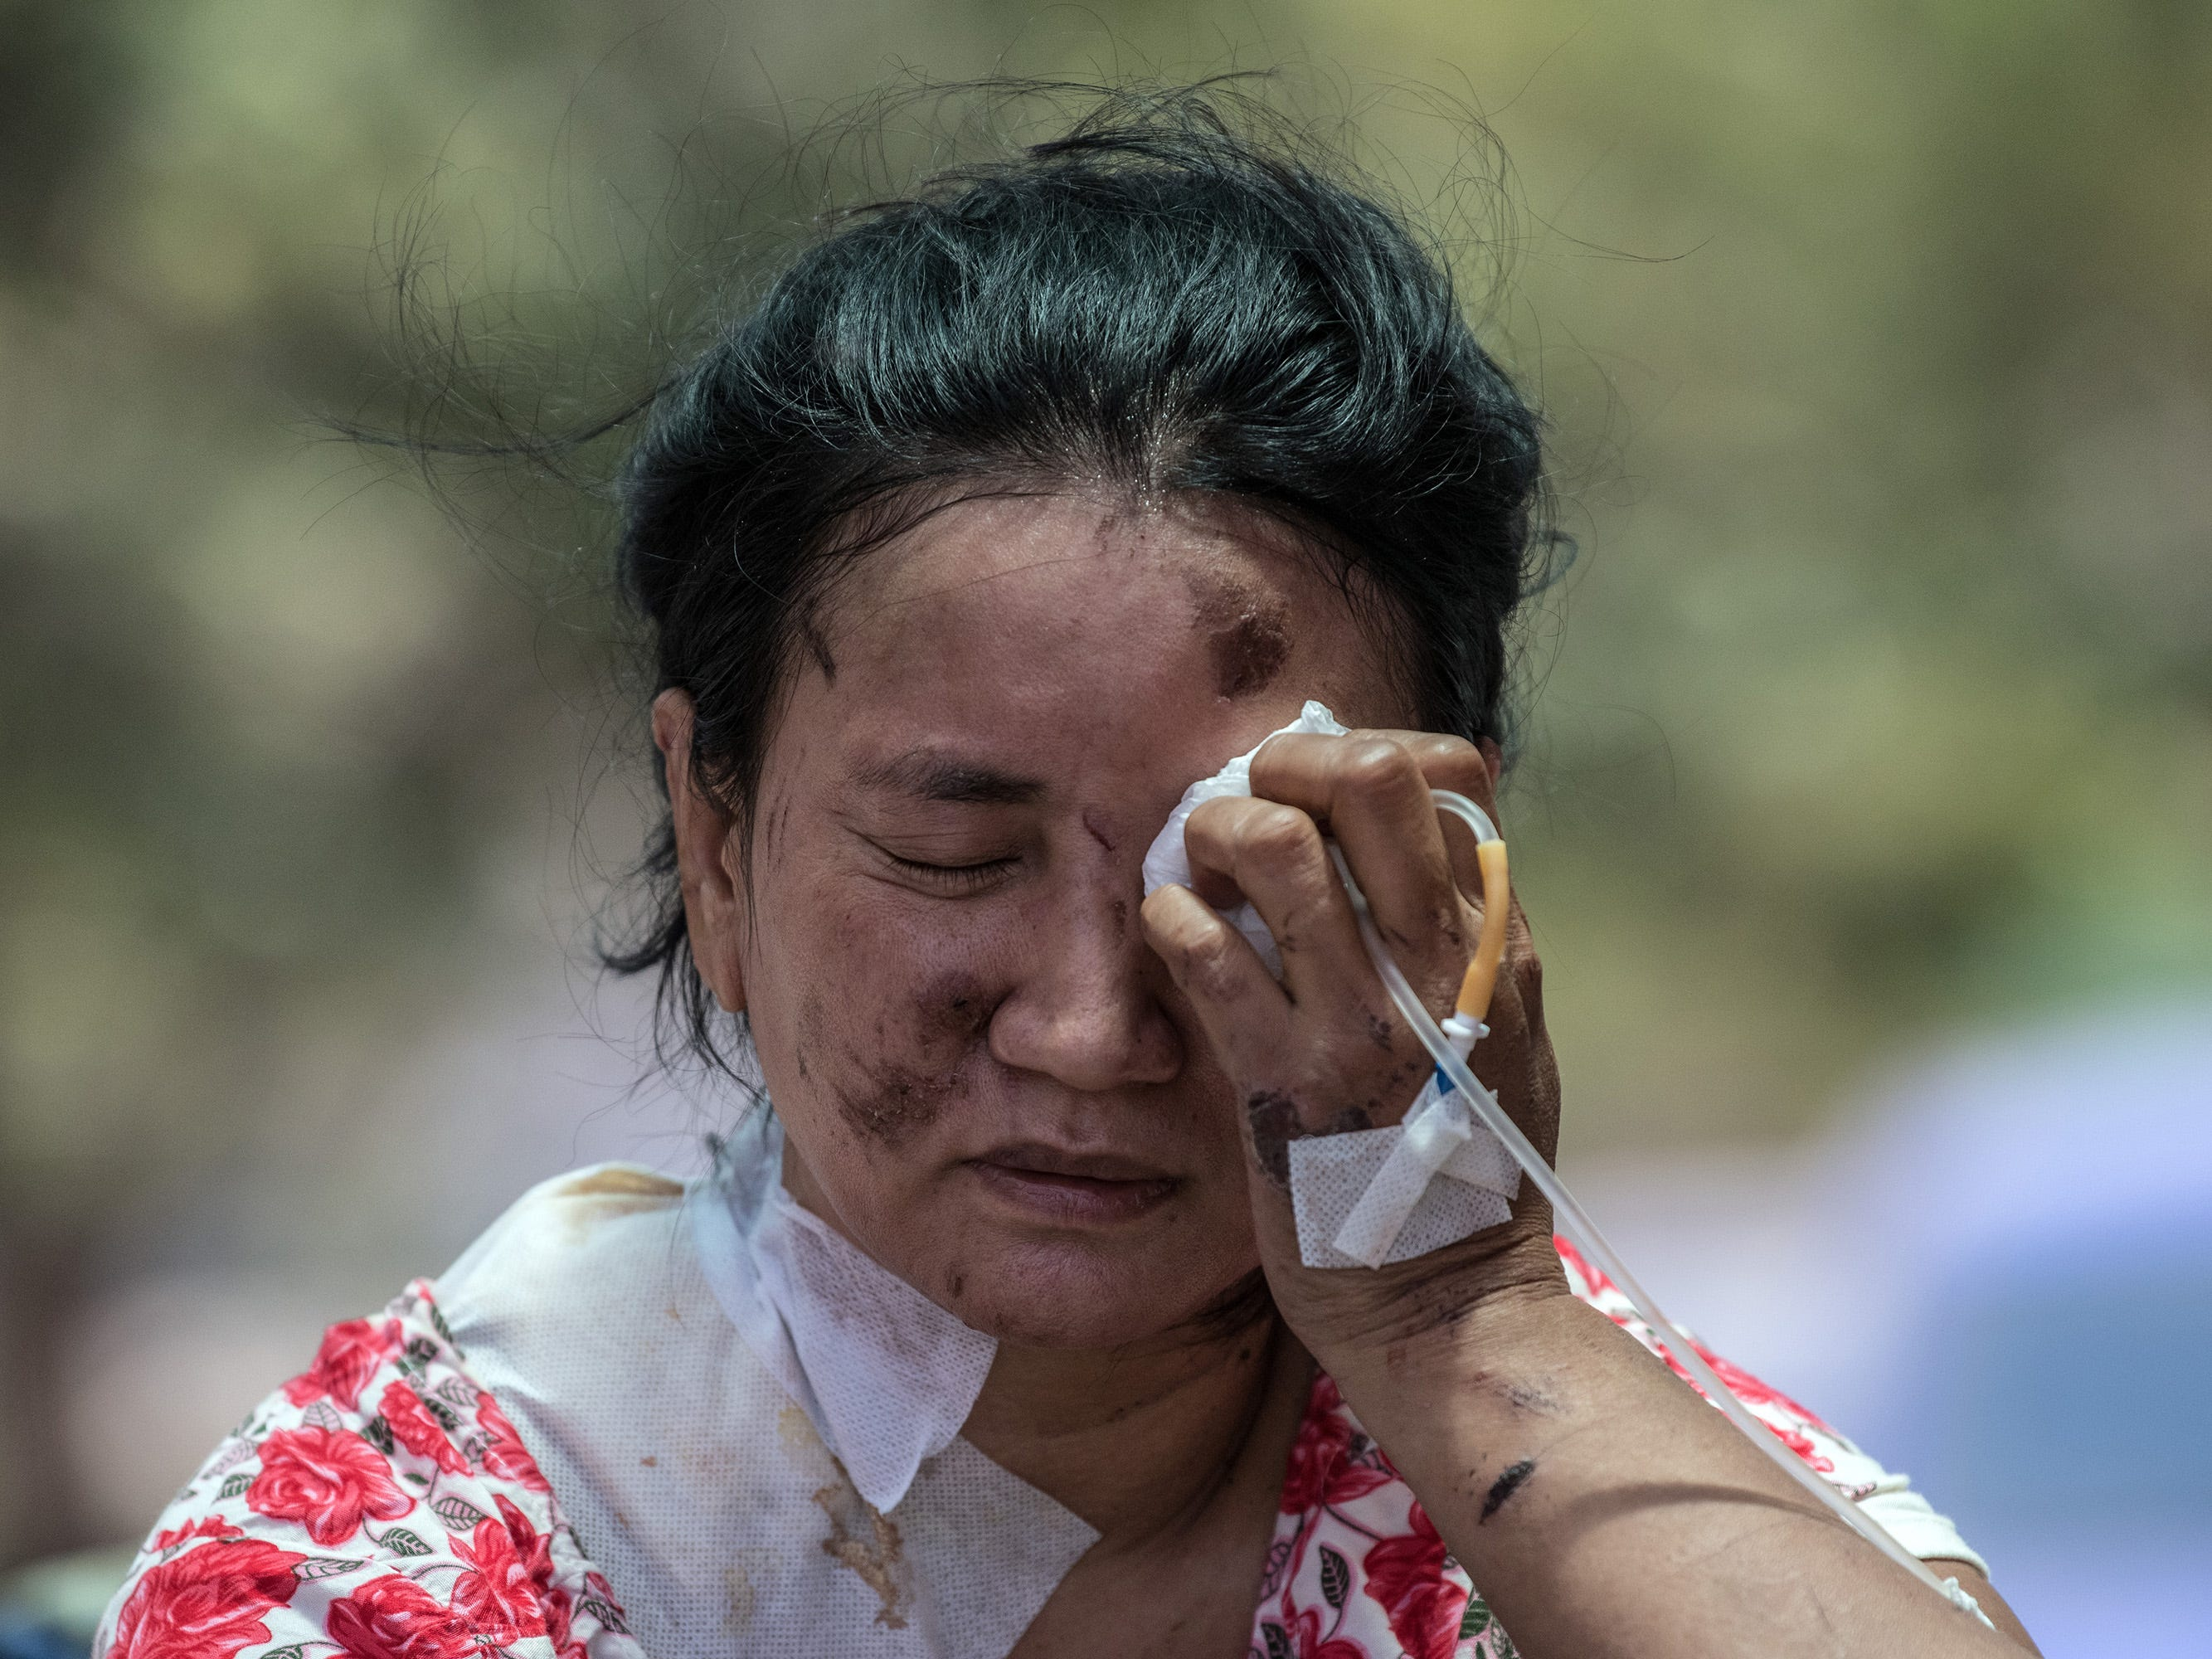 An injured woman holds a dressing to her eye as she waits outside a hospital in Palu, Indonesia, Oct. 3, 2018.